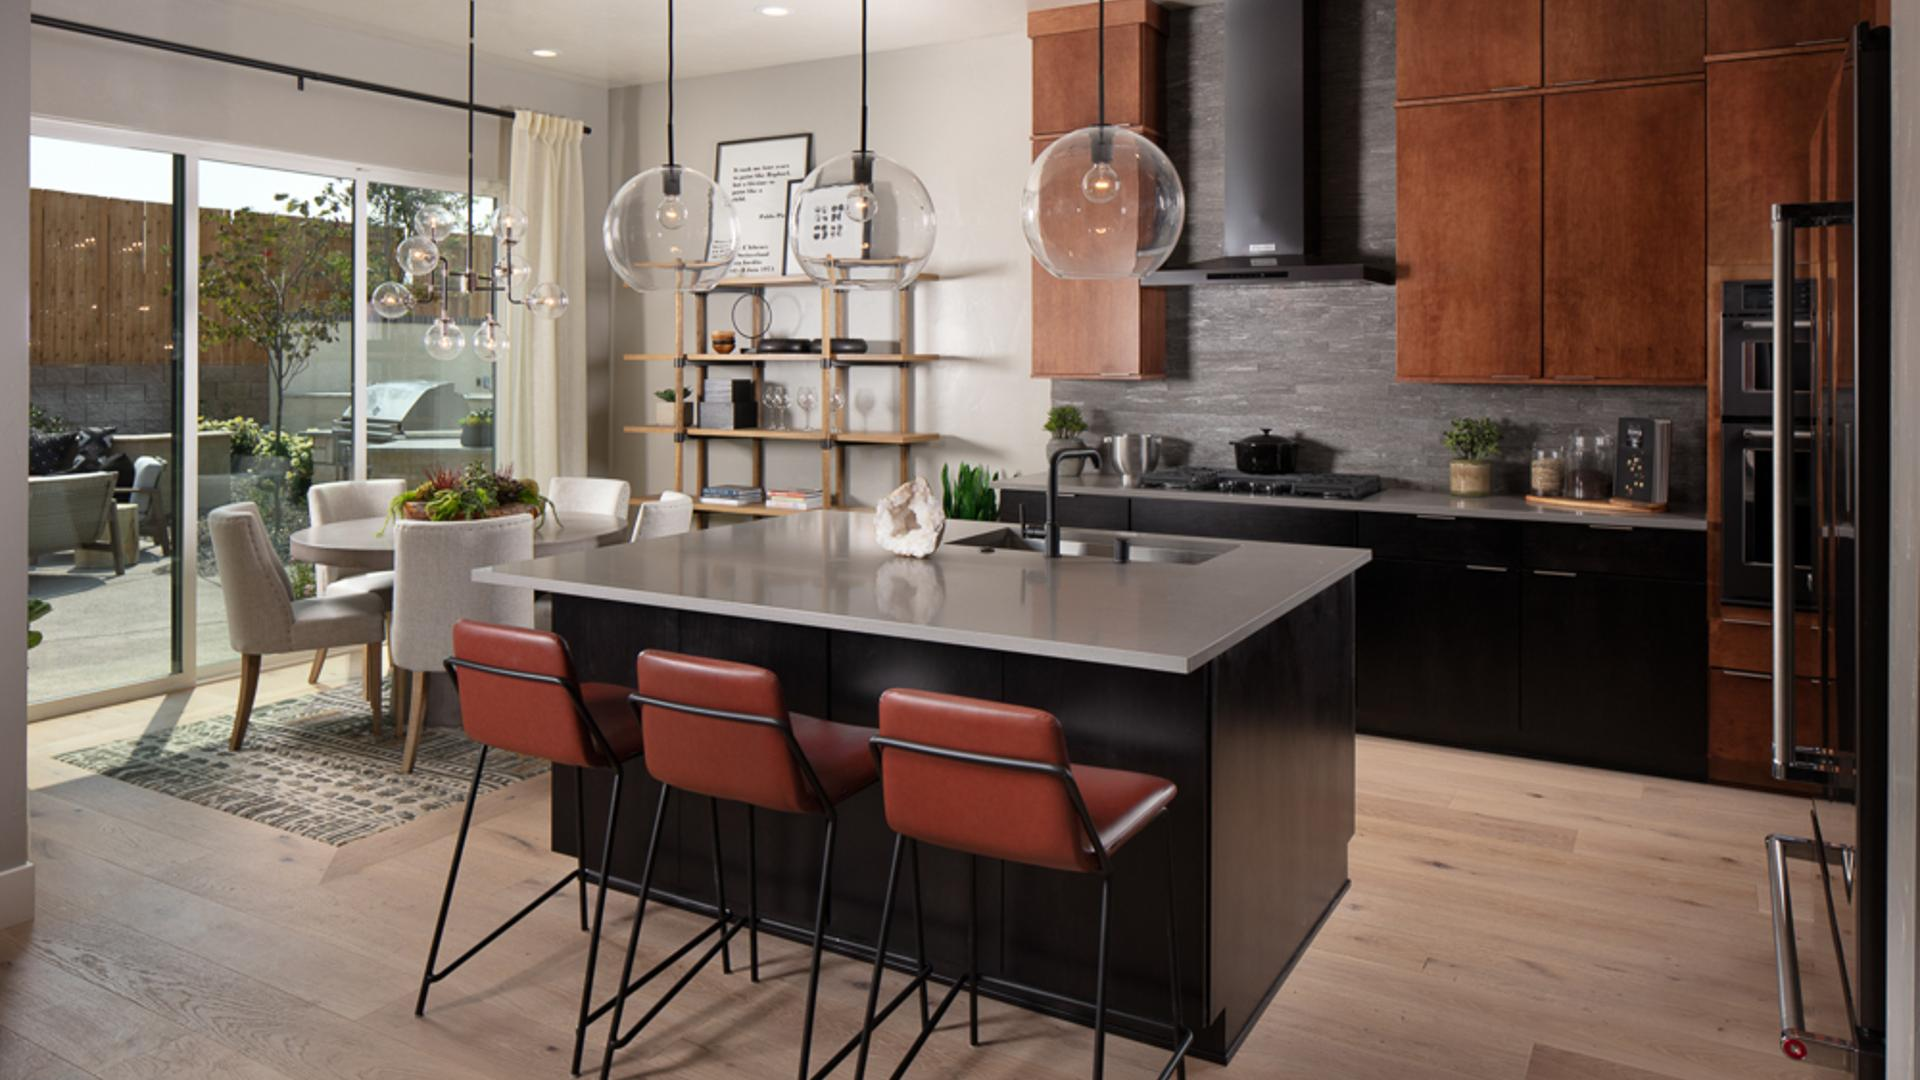 Select your finishes and personalize your home to your taste at our onsite Design Studio